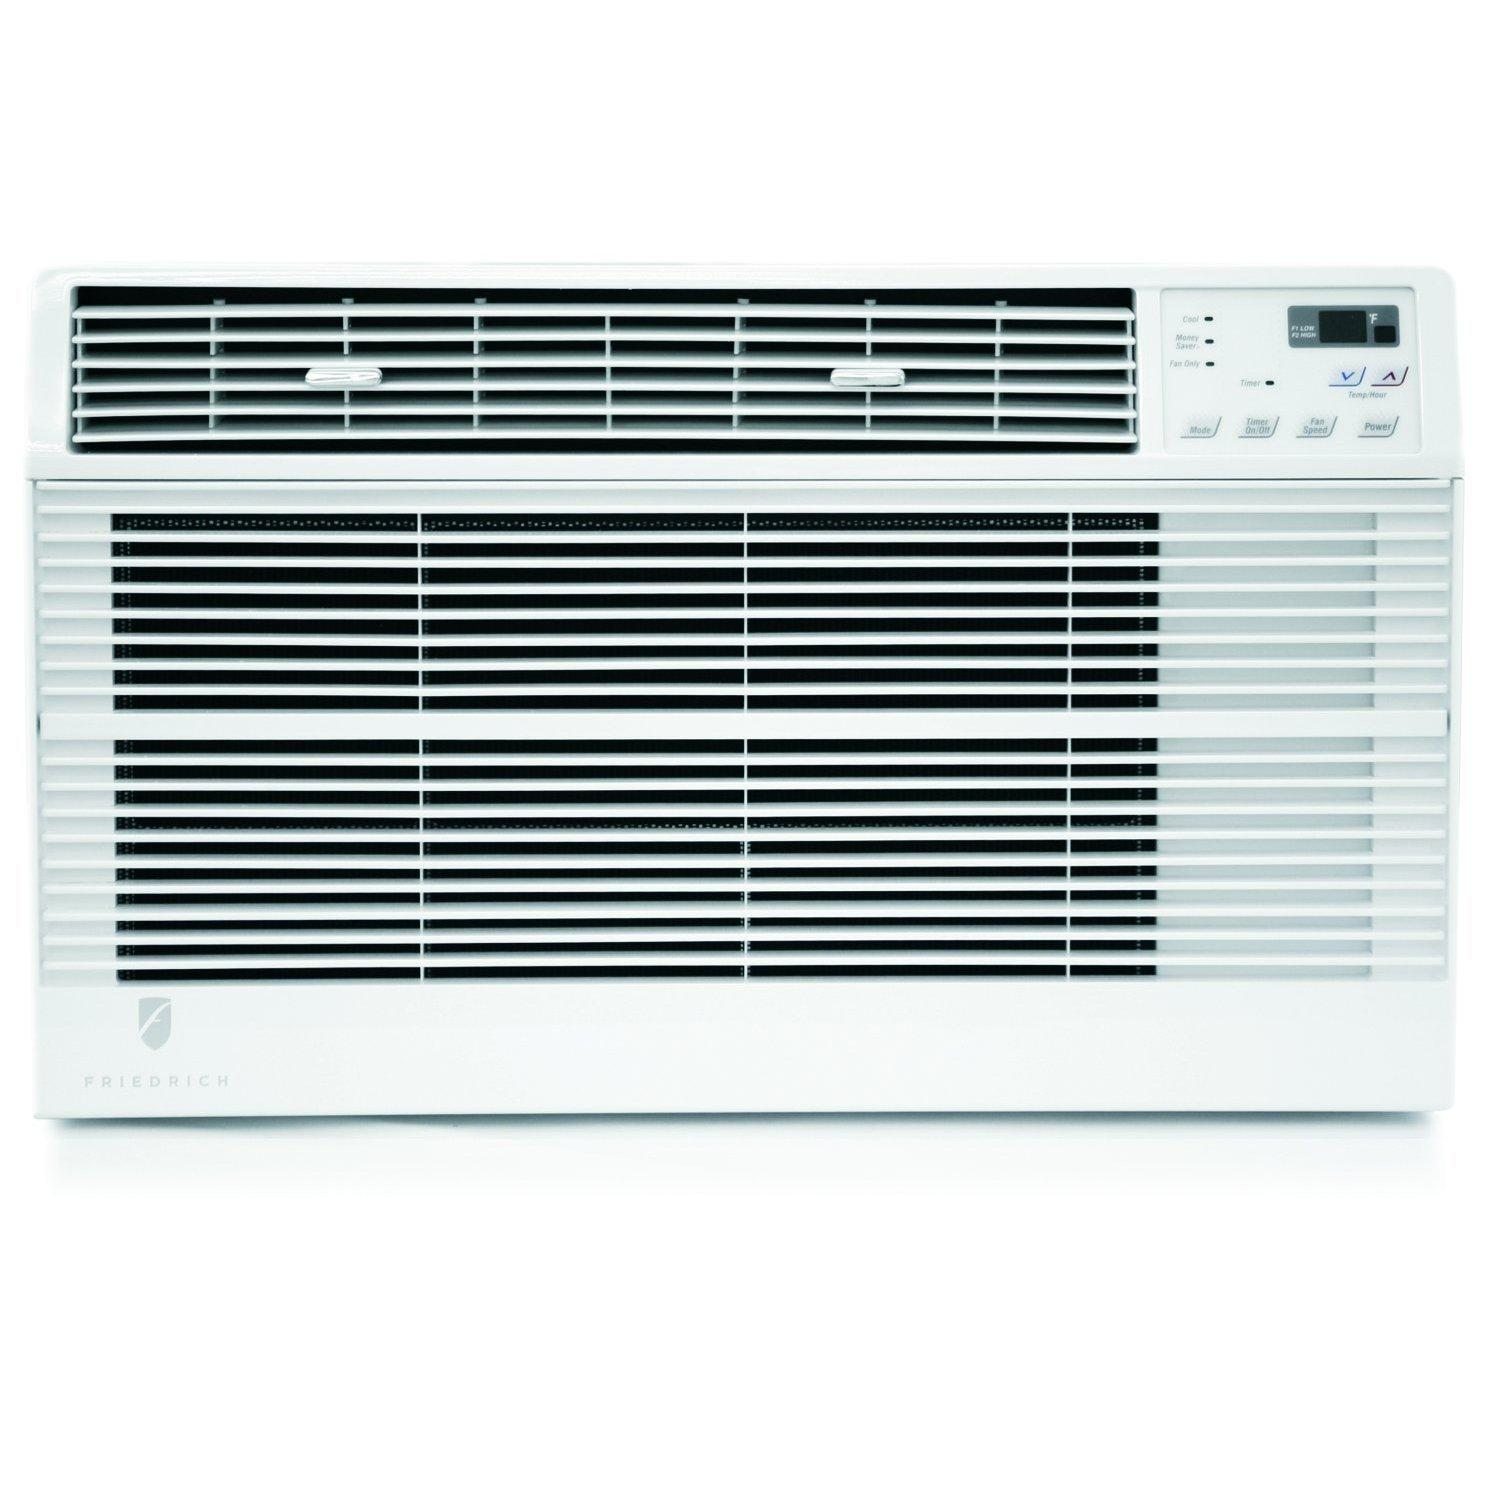 #0E1516 UE08D11 Friedrich Ue08d11 Uni Fit Series Best 10603 Air Conditioner Wall Sleeve photos with 1500x1500 px on helpvideos.info - Air Conditioners, Air Coolers and more